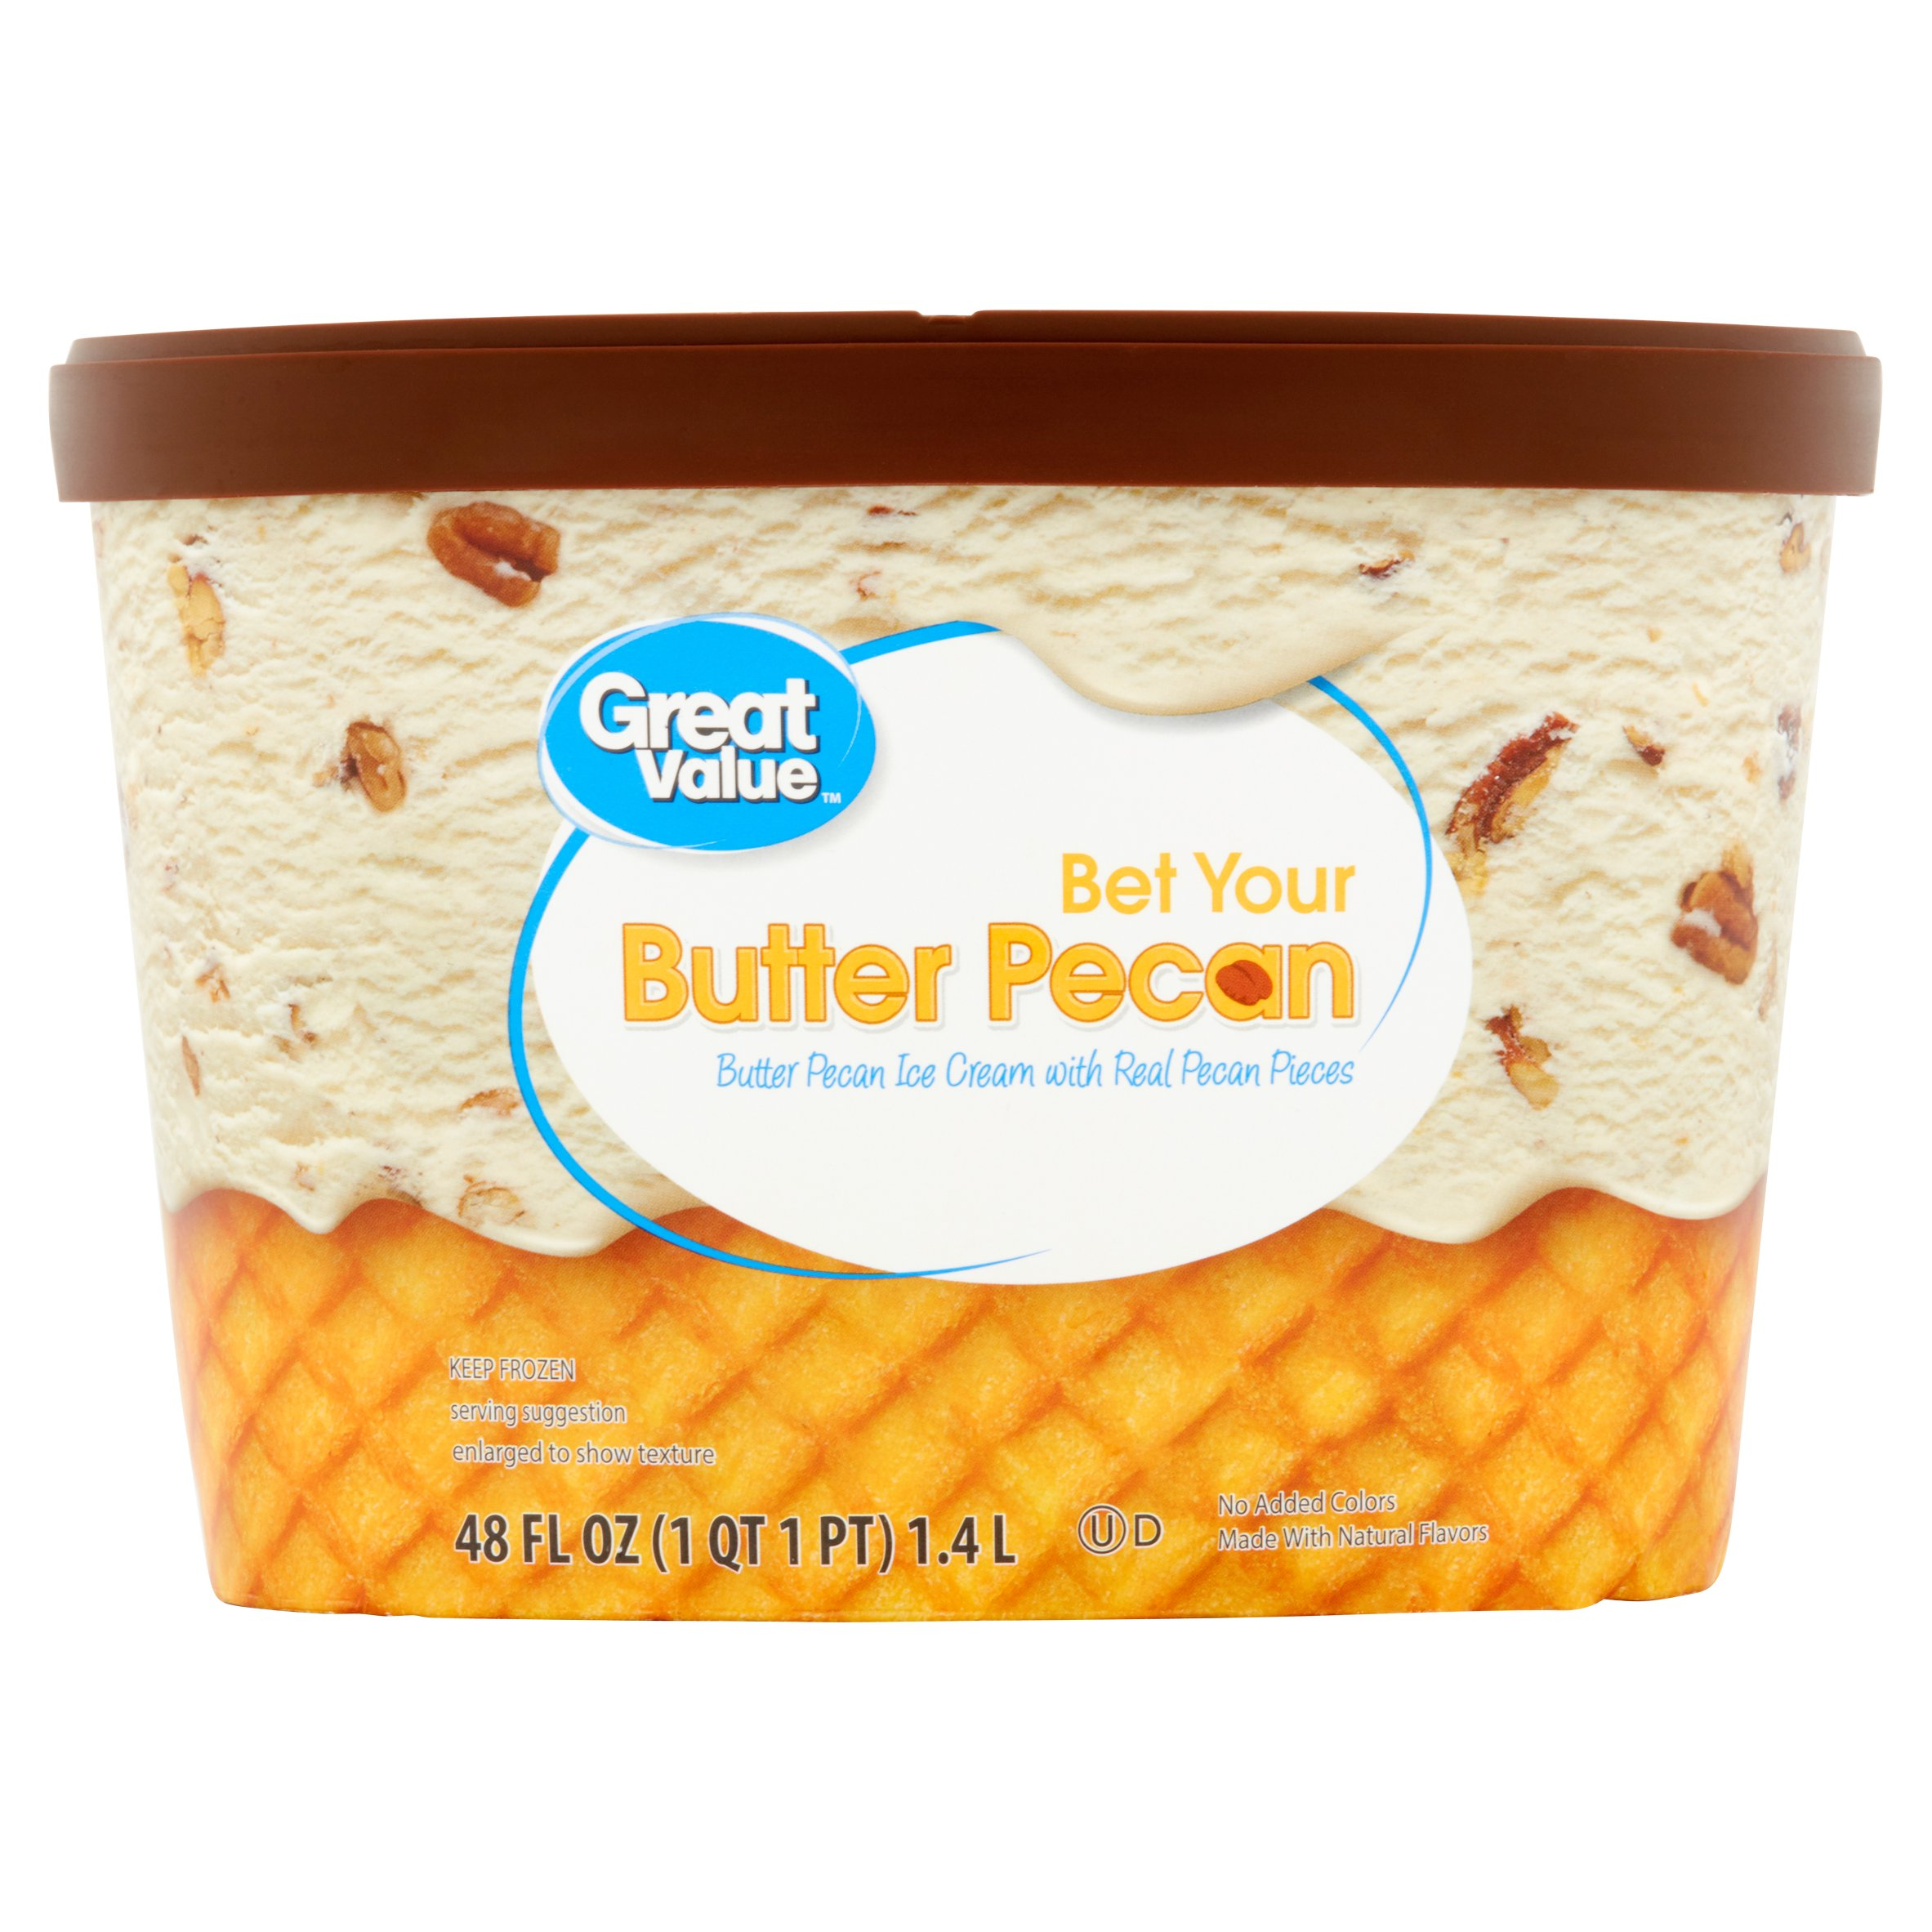 Great Value™ Butter Pecan Ice Cream, 48 fl oz